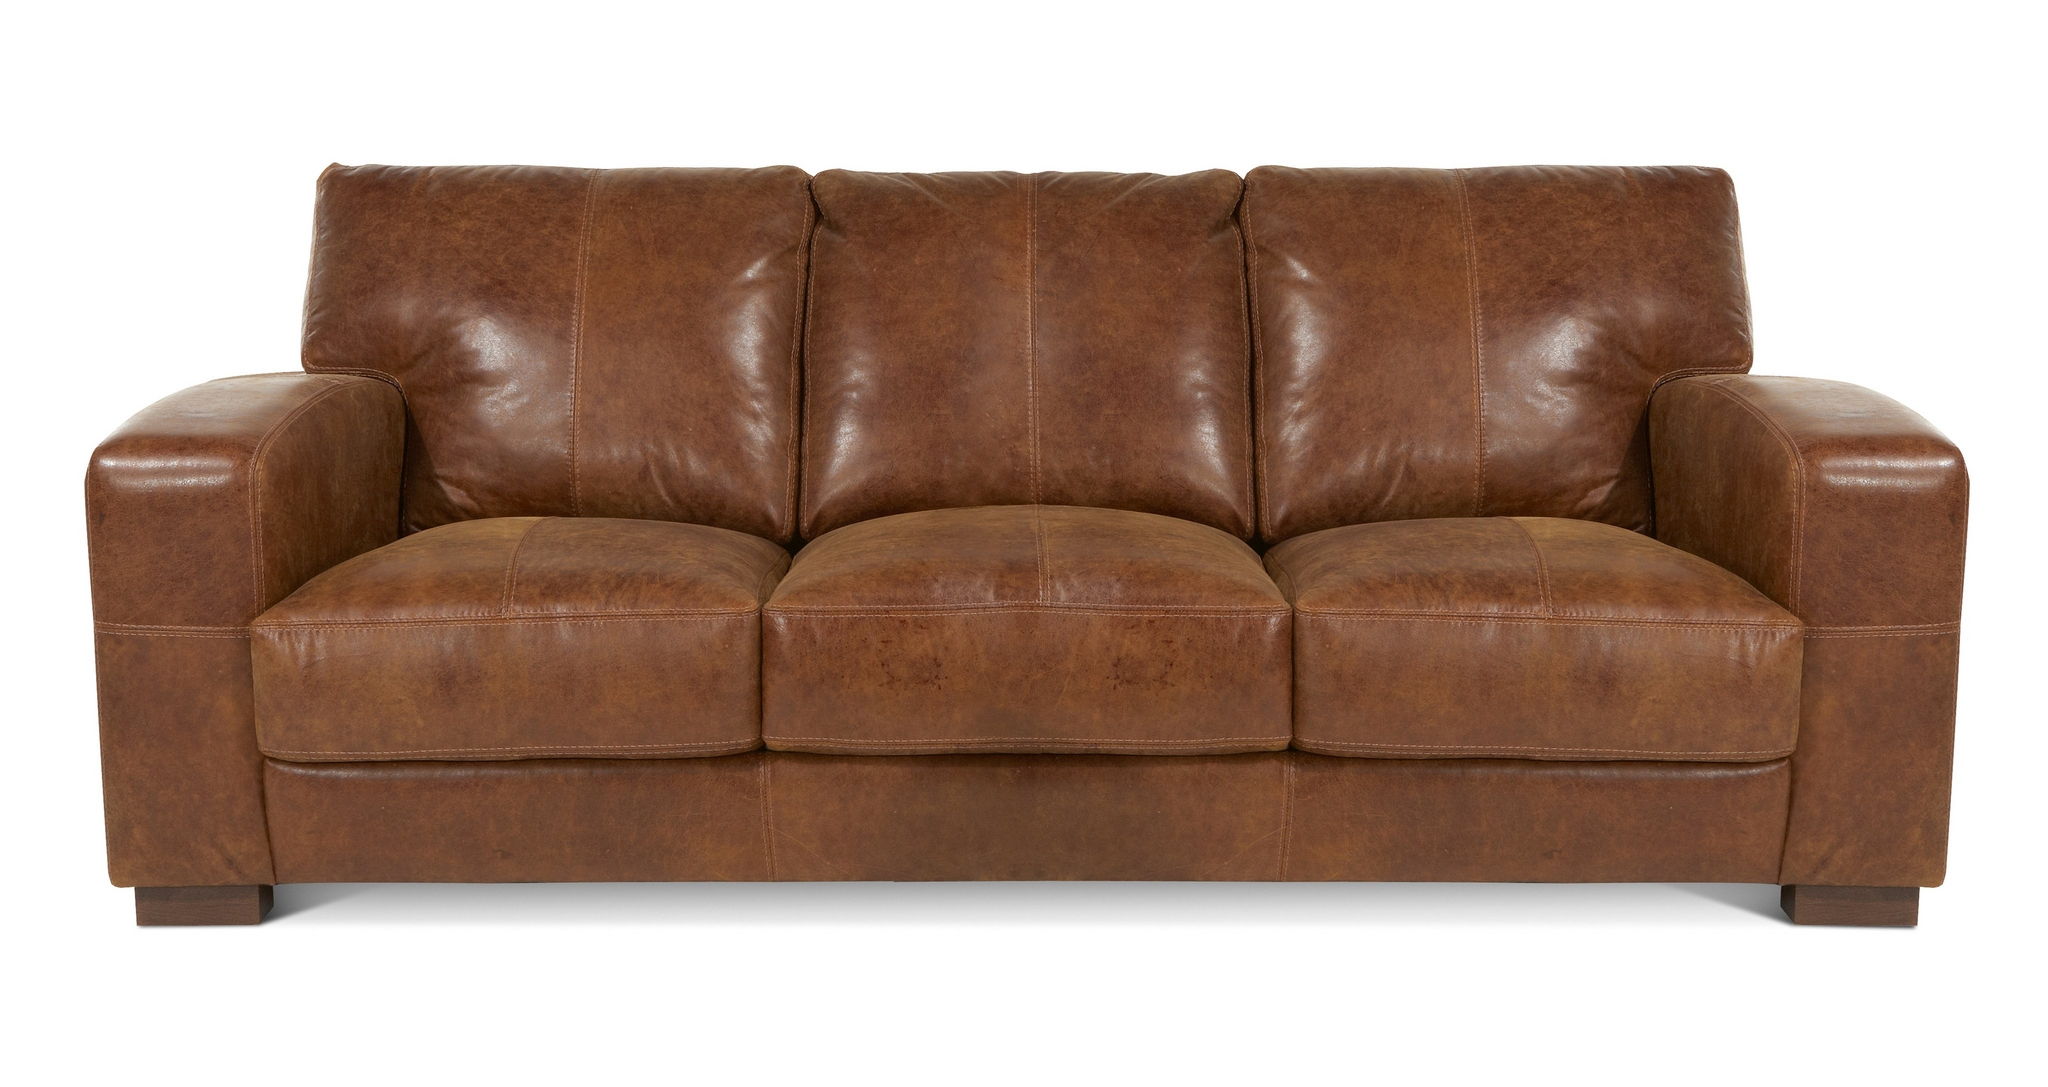 Dfs Leather Sofas And Chairs Leather Sofas Corner Sofas Sofa Beds Dfs Click To Zoom Zinc